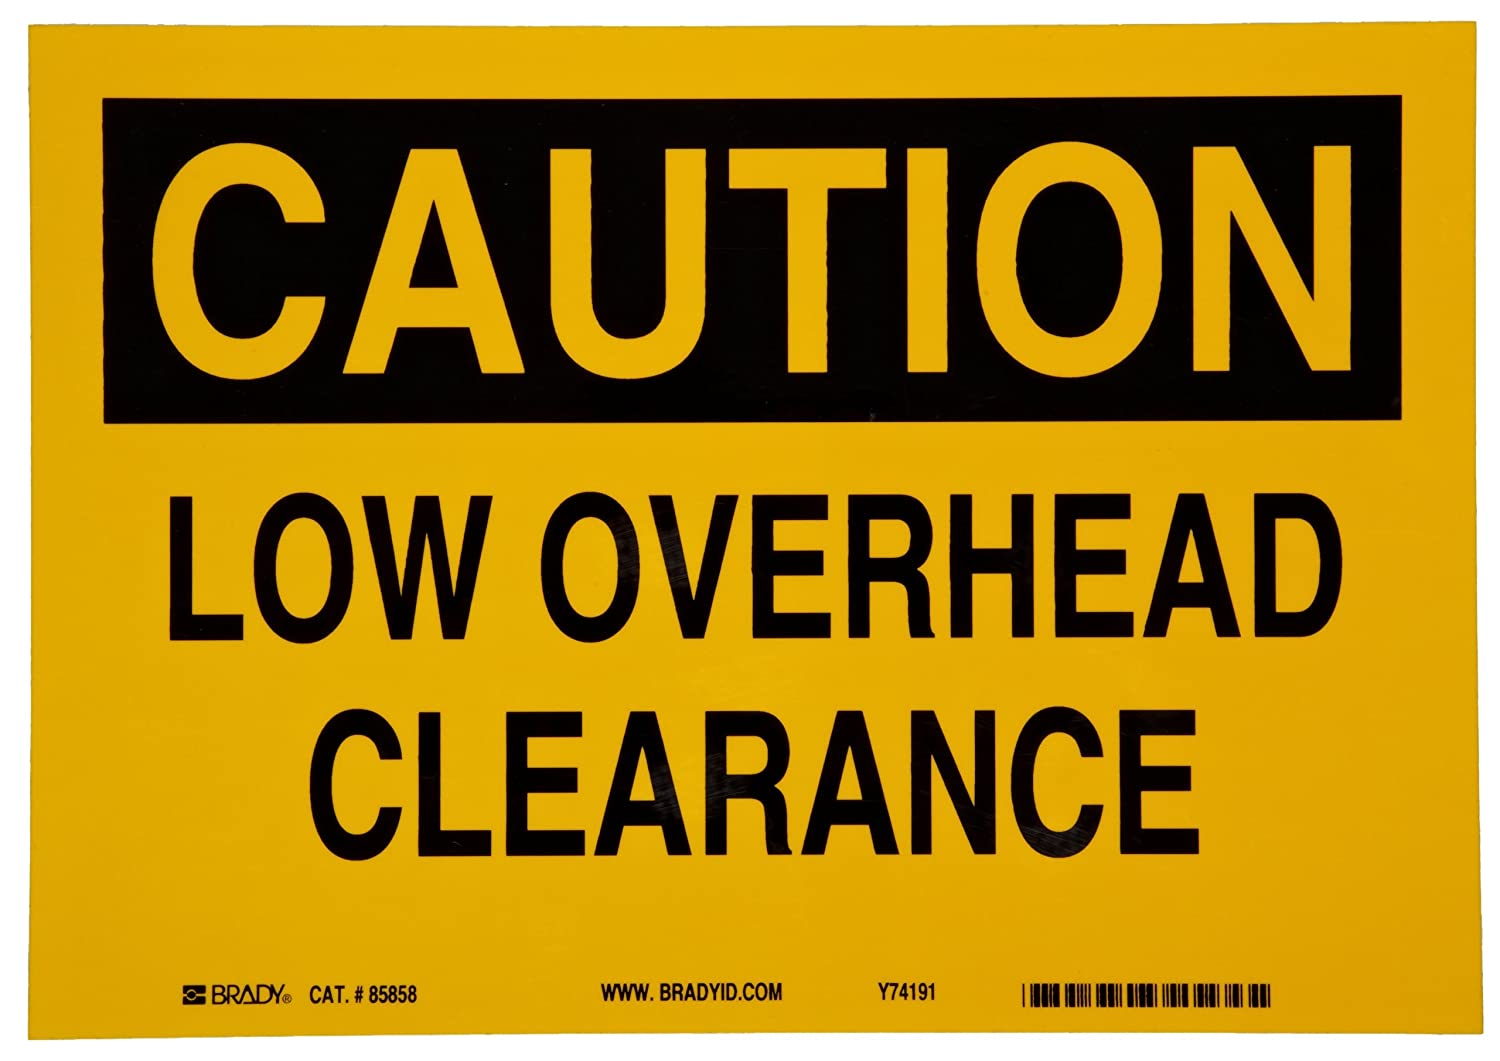 Brady 85858 10 Width x 7 Height B-302 Polyester, Black on Yellow Sign, Header Caution, Legend Low Overhead Clearance